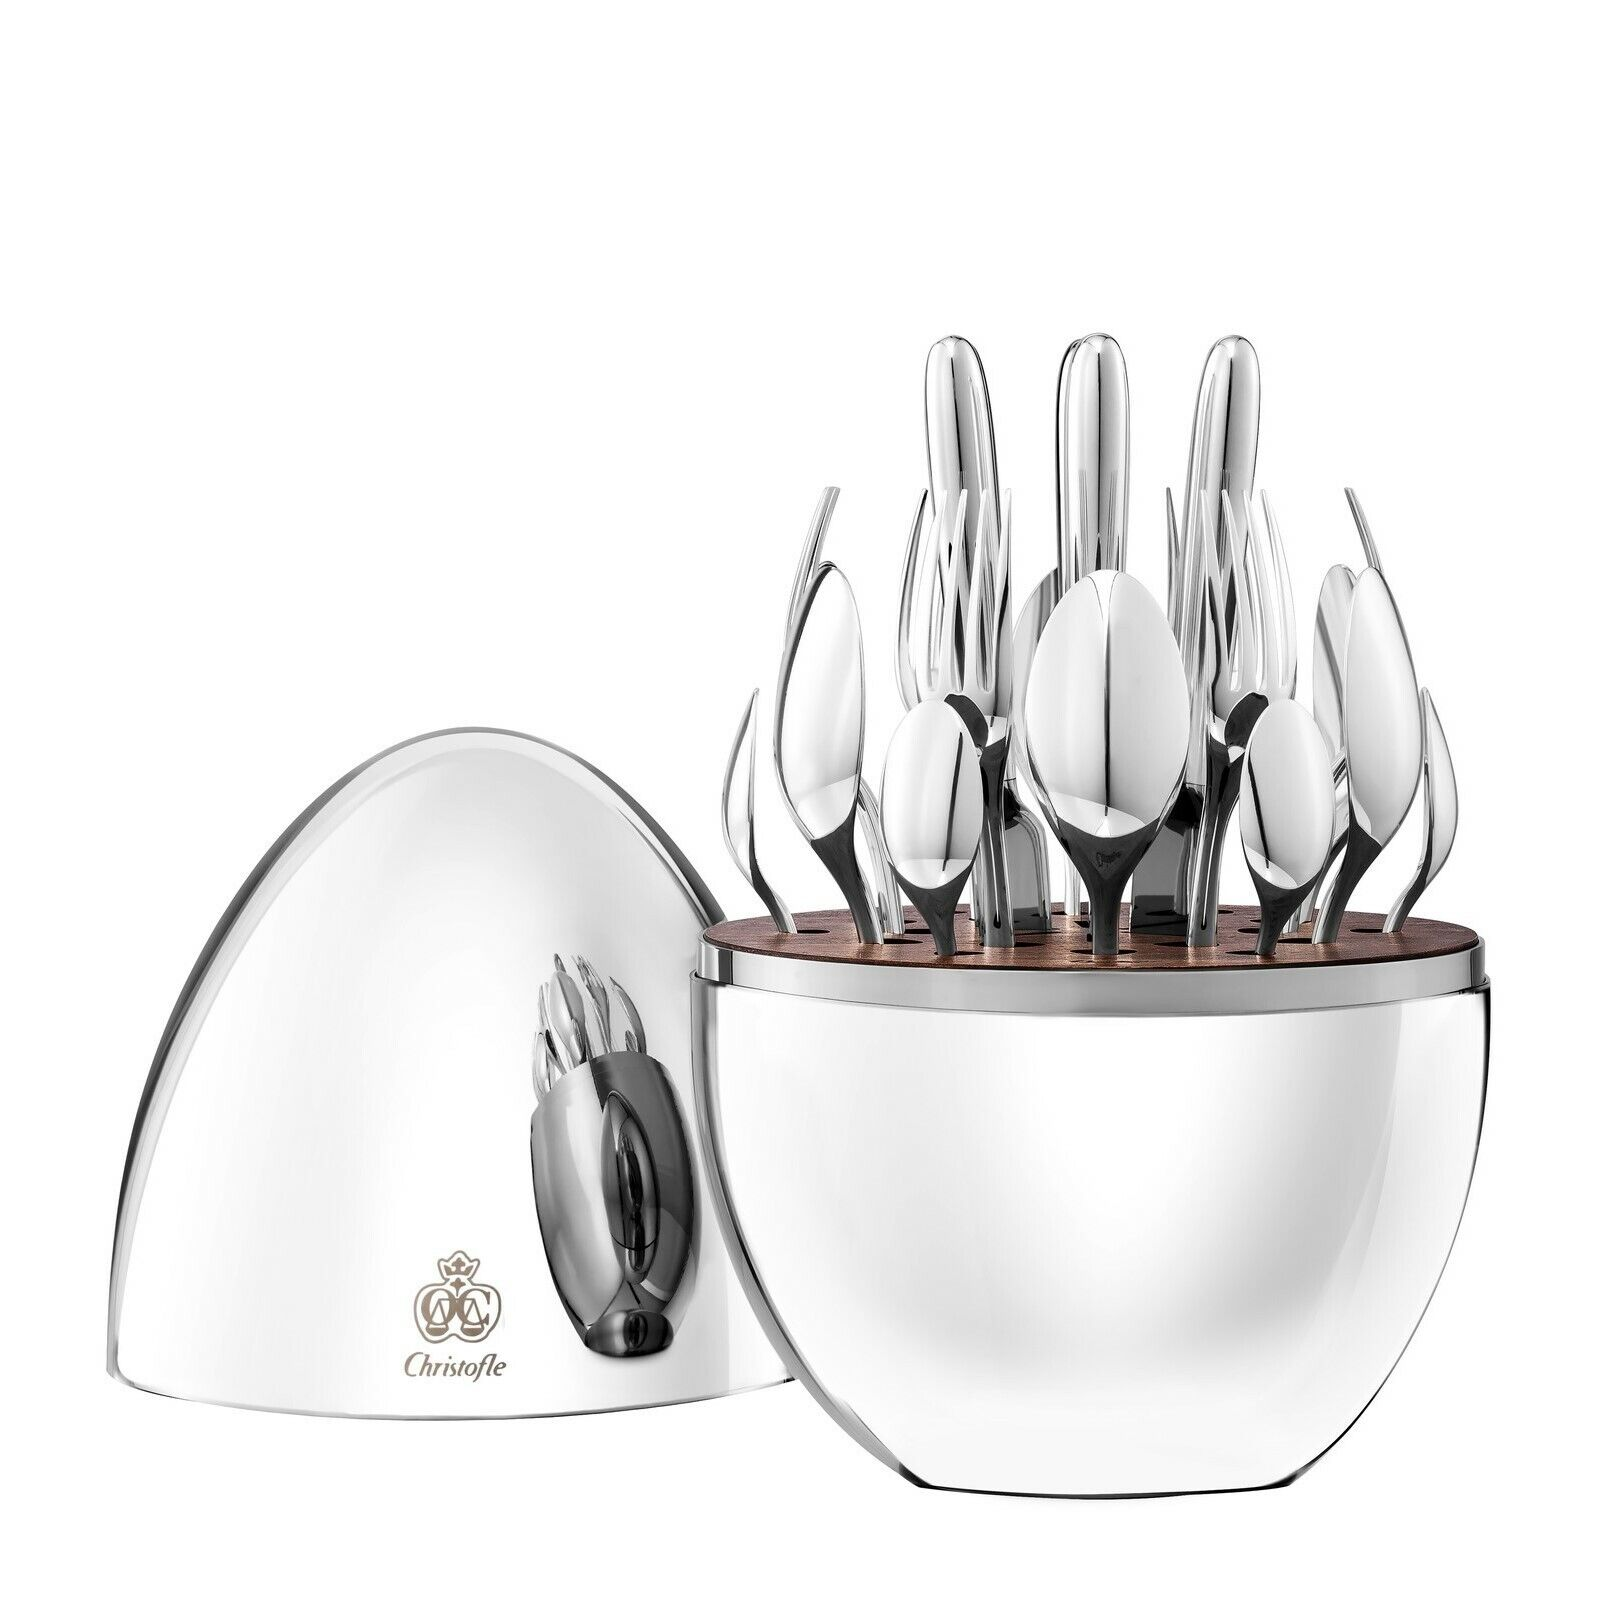 New Mood Party by Christofle Silver Plate Flatware Set 24 Pc Appetizer Dessert